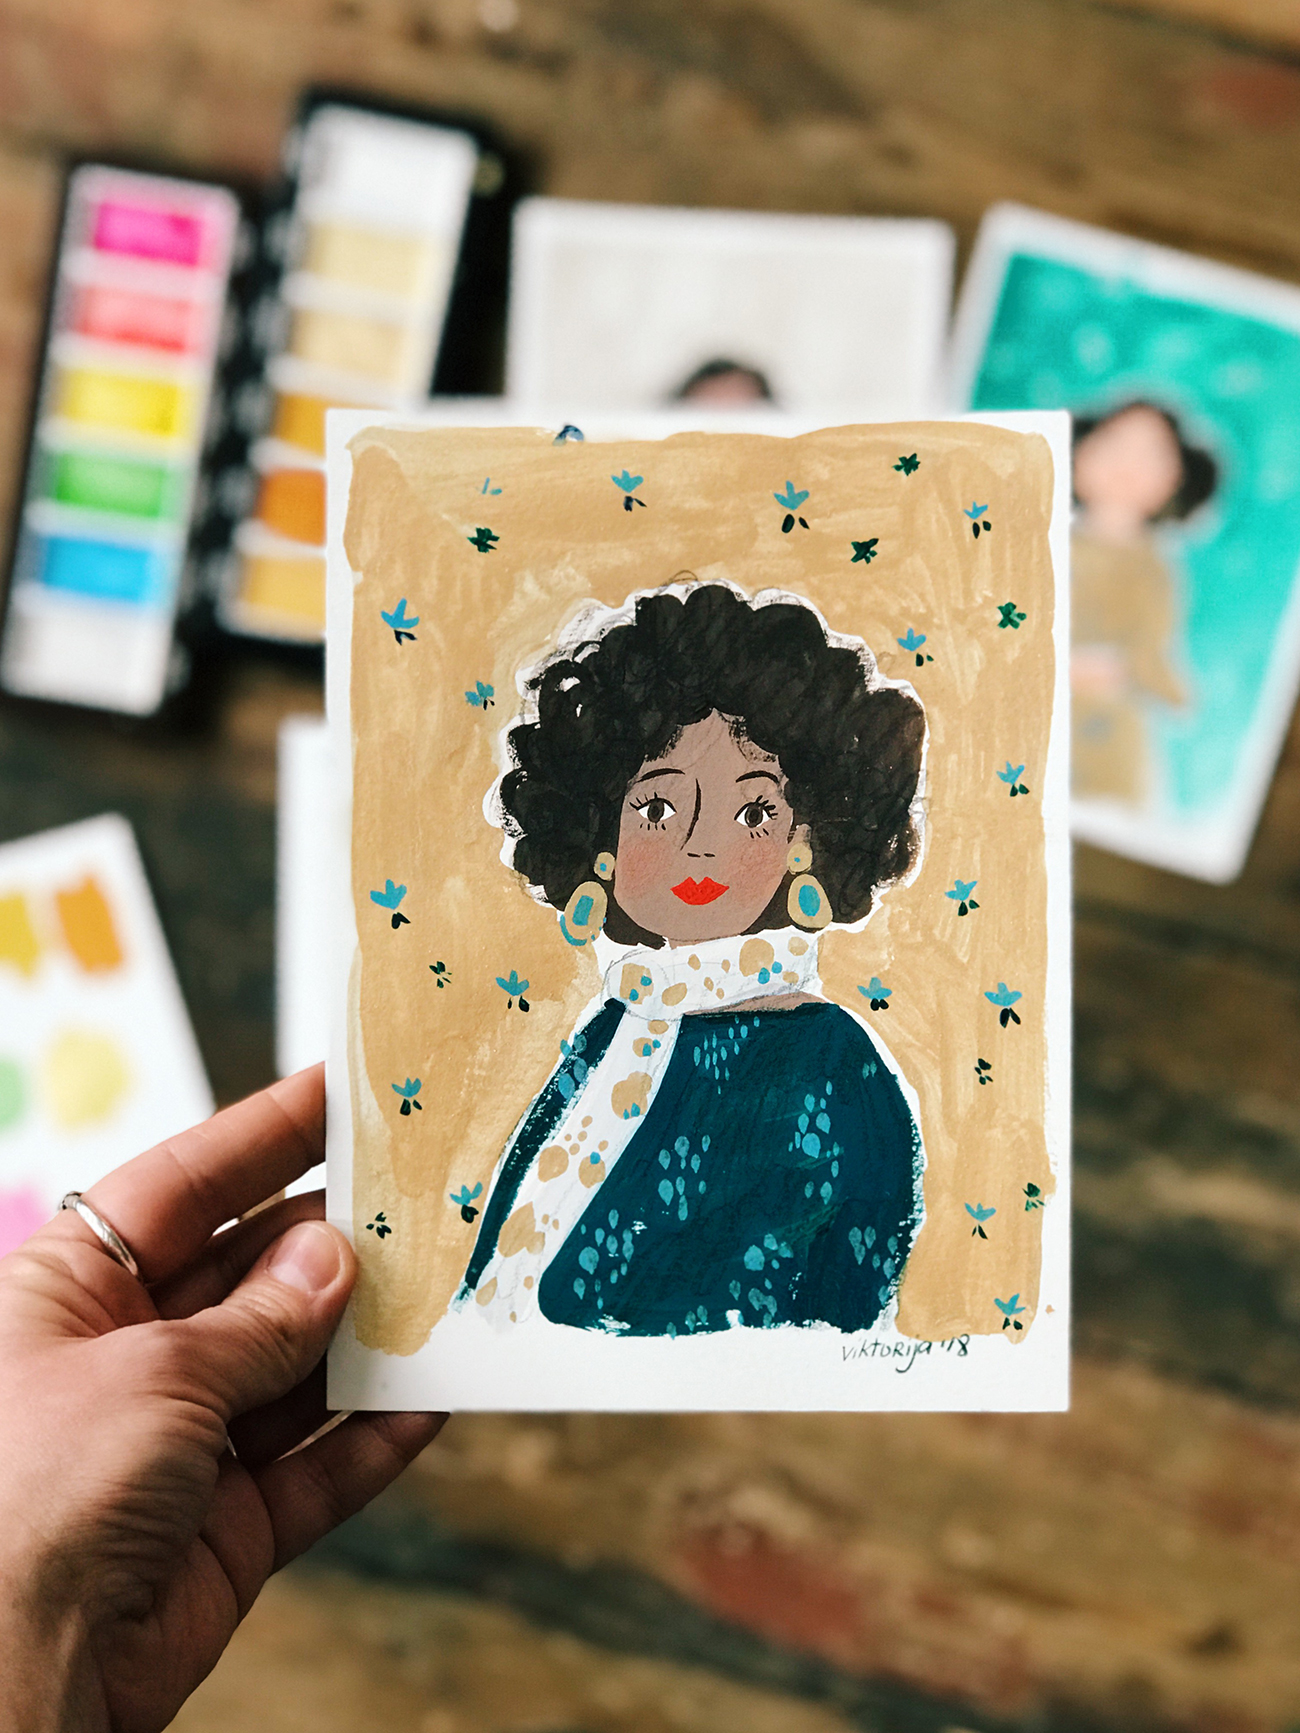 Viktorija Semjonova's illustration of a girl with a scarf using Kuretake Gansai Tambi Japanese Watercolour Pearl set and Kuretake Gansai Tambi Japanese Watercolour Starry set with Holbein Gouache.